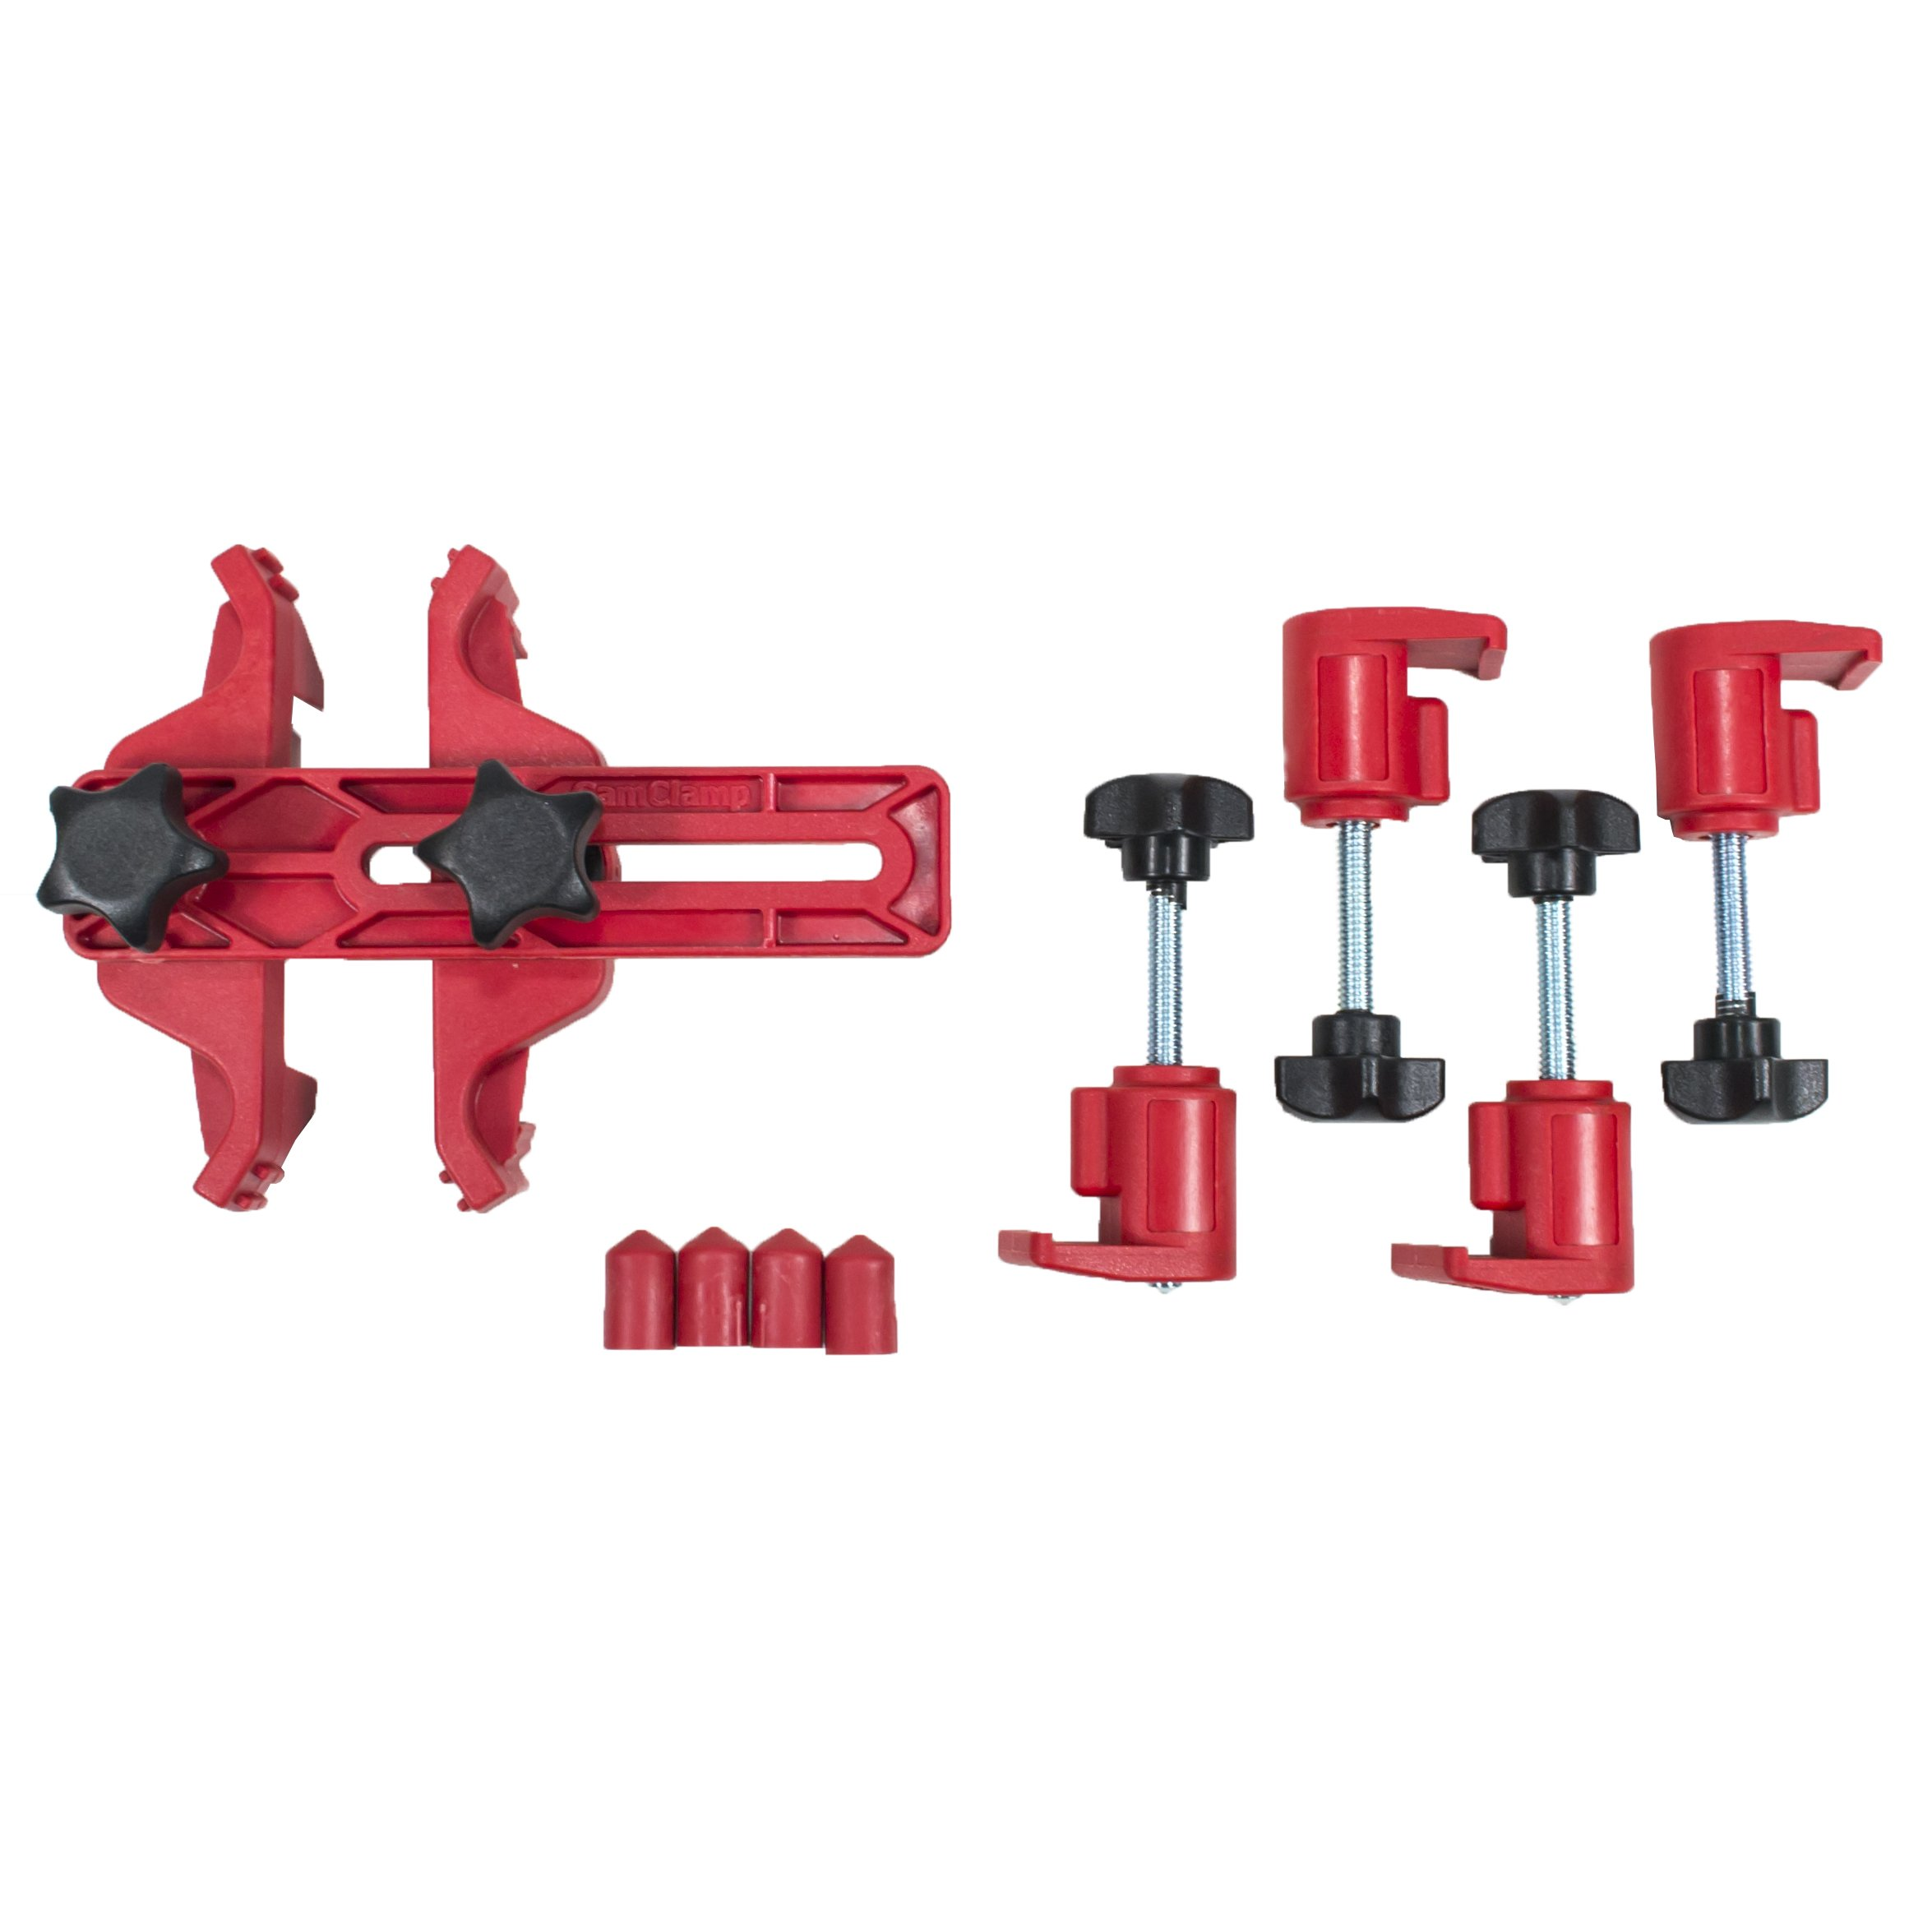 Timing Gear Clamp Set - Holds Valve Timing - Single, dual or quad overhead cam by Tool Guy Republic